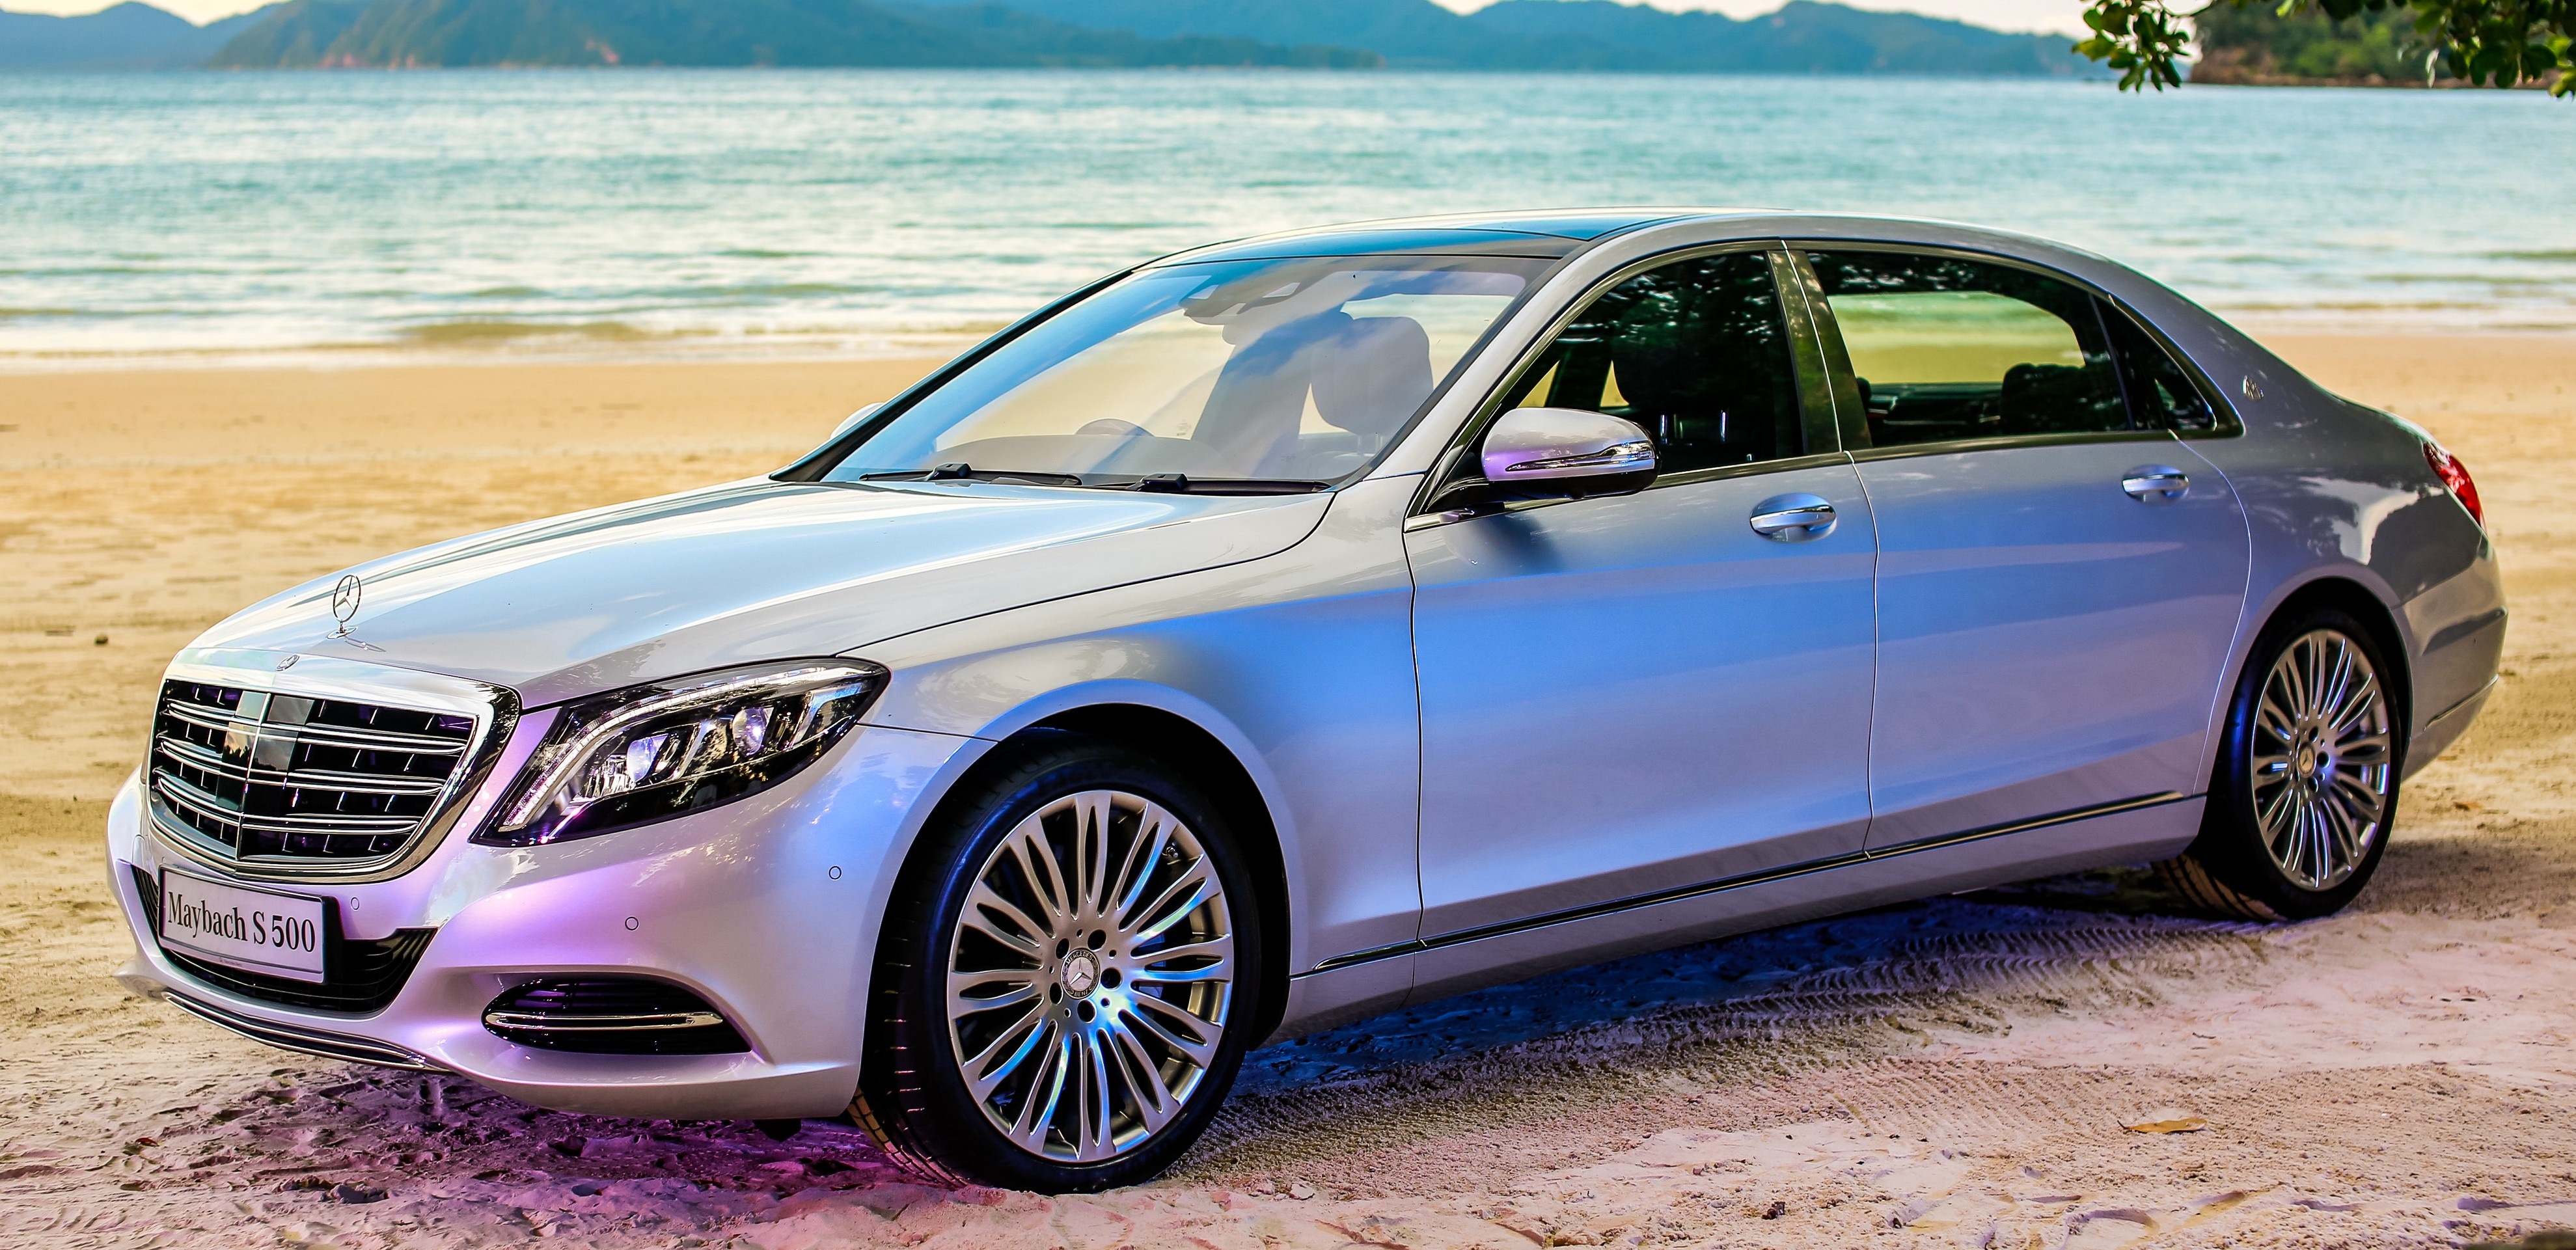 Mercedes maybach s500 and s600 launched in malaysia for Mercedes benz s600 price